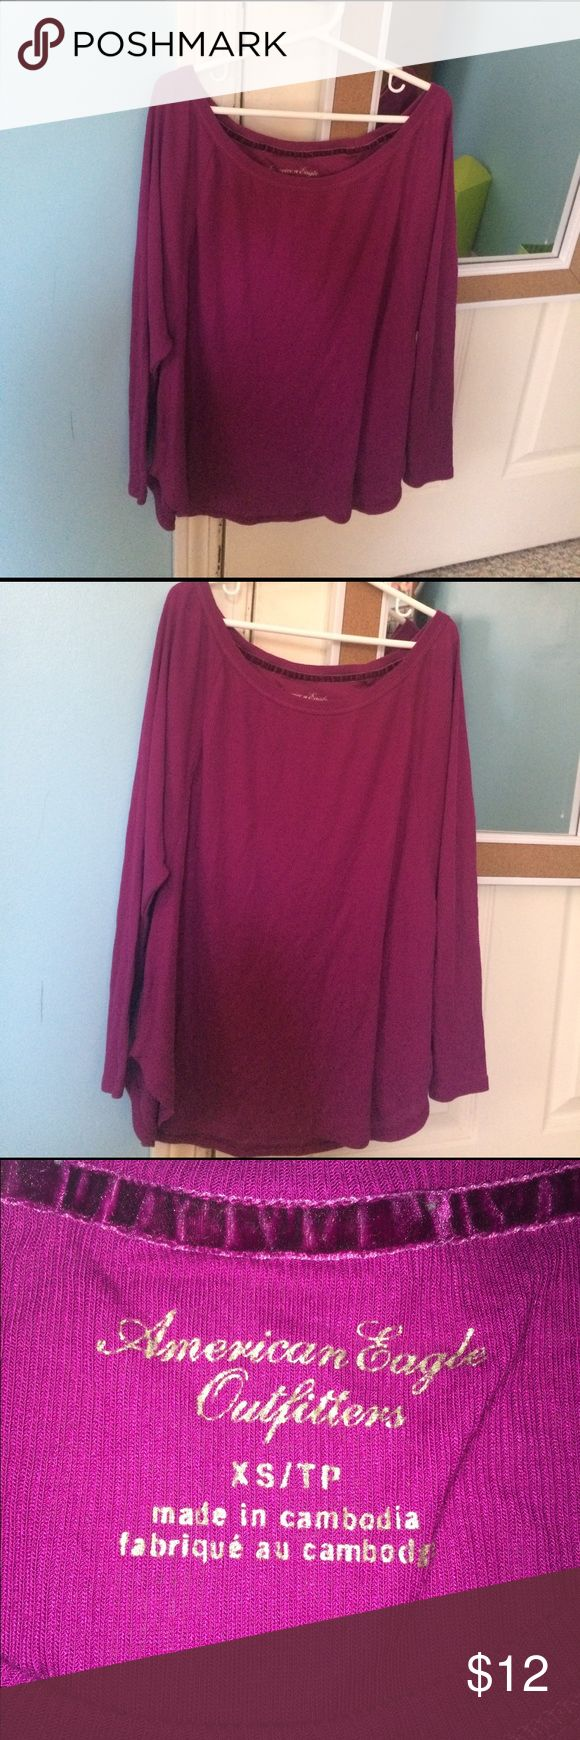 AMERICAN EAGLE slouch fit fuchsia top fuchsia color slouchy top with 3/4 length sleeves by american eagle- perfect to wear over leggings! American Eagle Outfitters Tops Tees - Long Sleeve